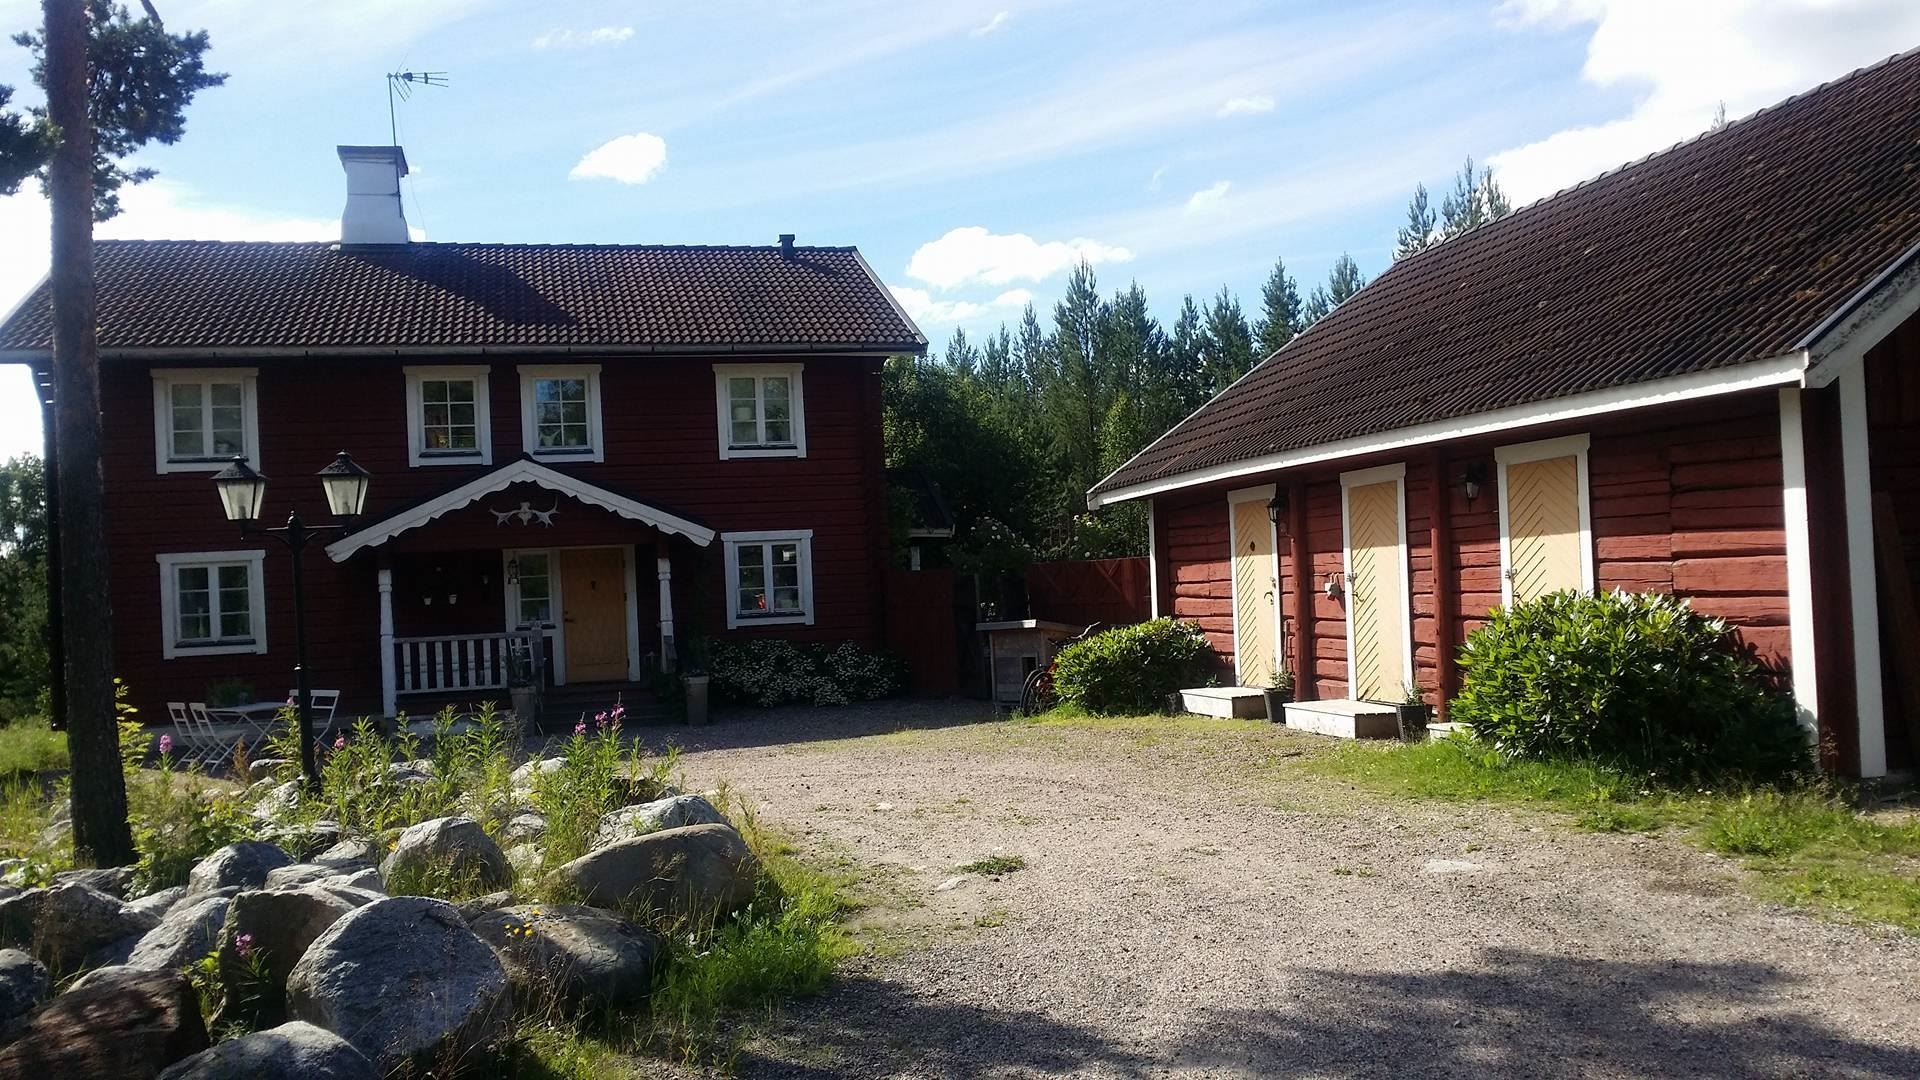 S5703 Private accommodation in Skrängstabodarna, Njurunda